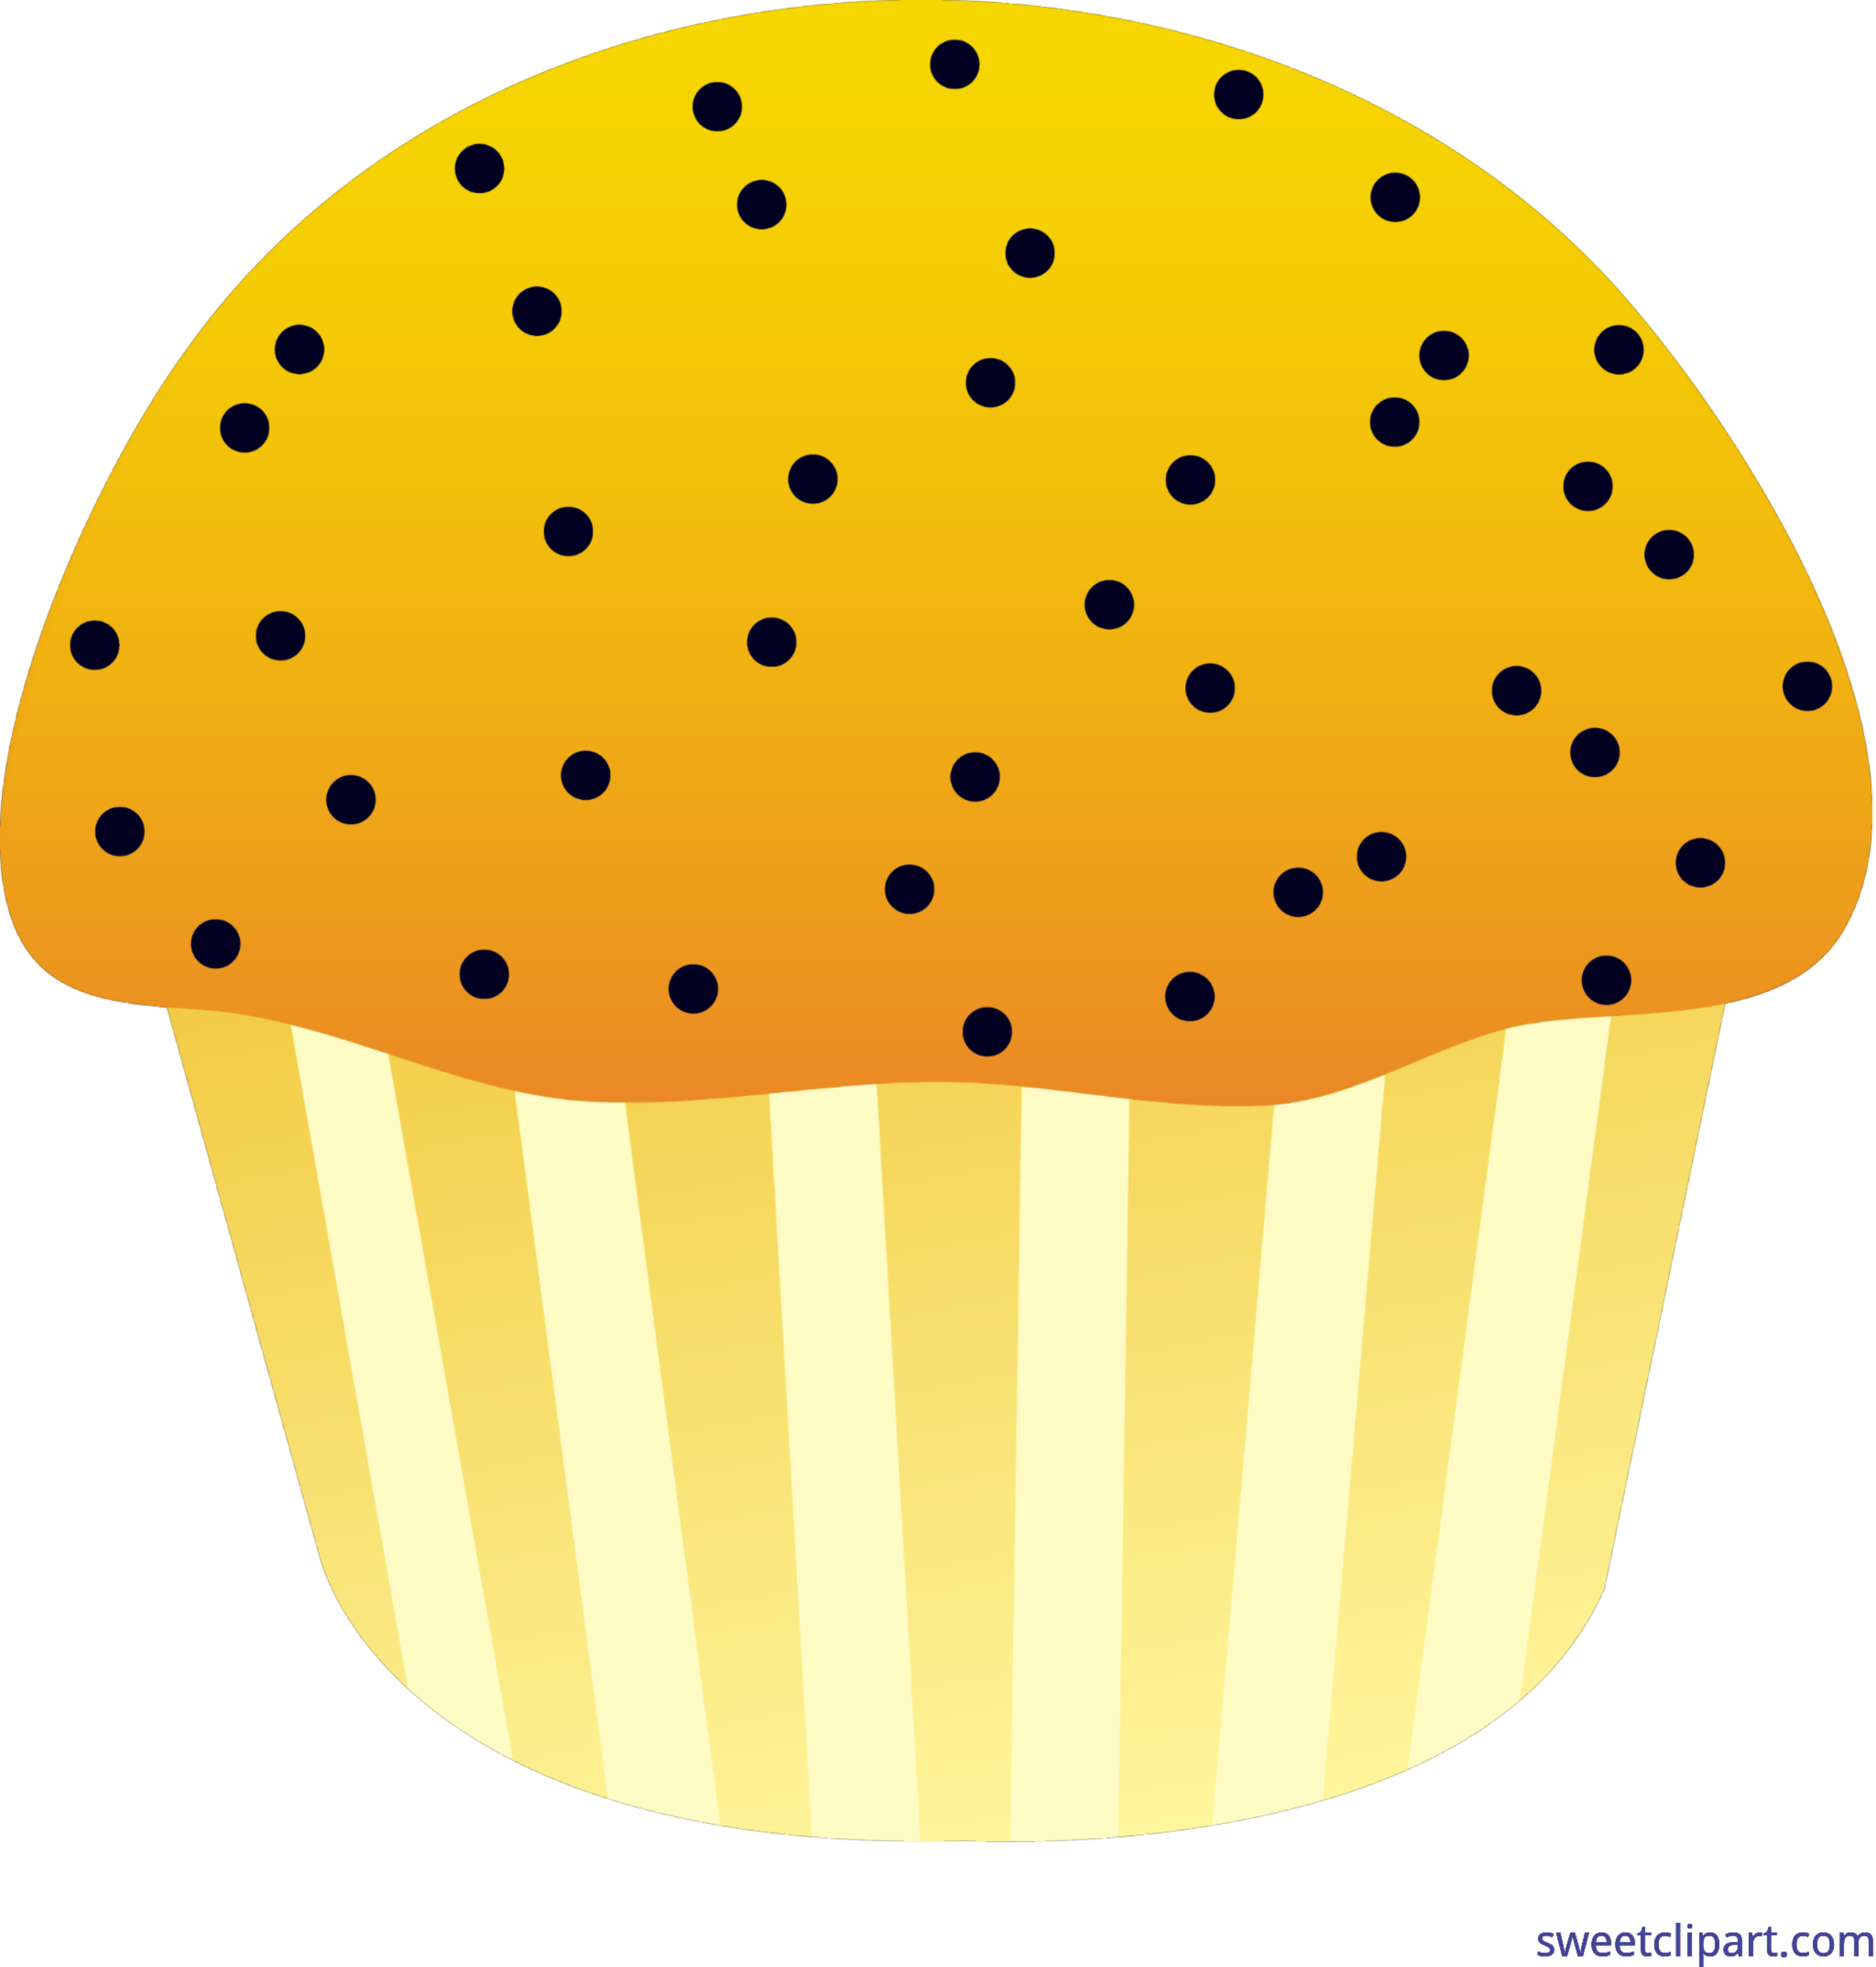 Muffins clipart sweet. Muffin lemon poppy seed